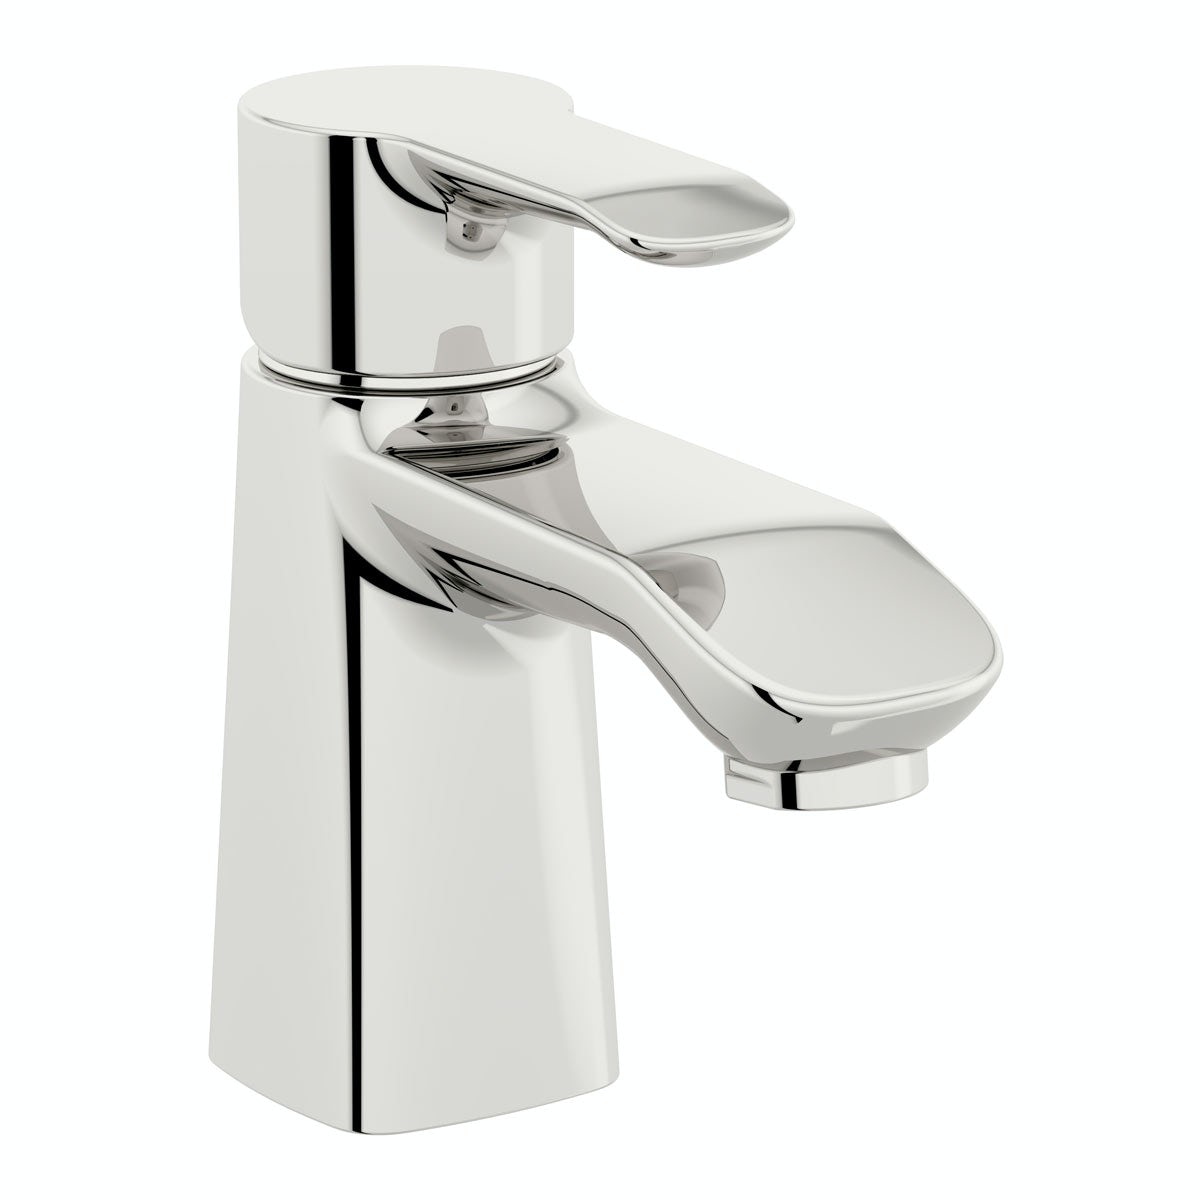 Orchard Wave basin mixer tap